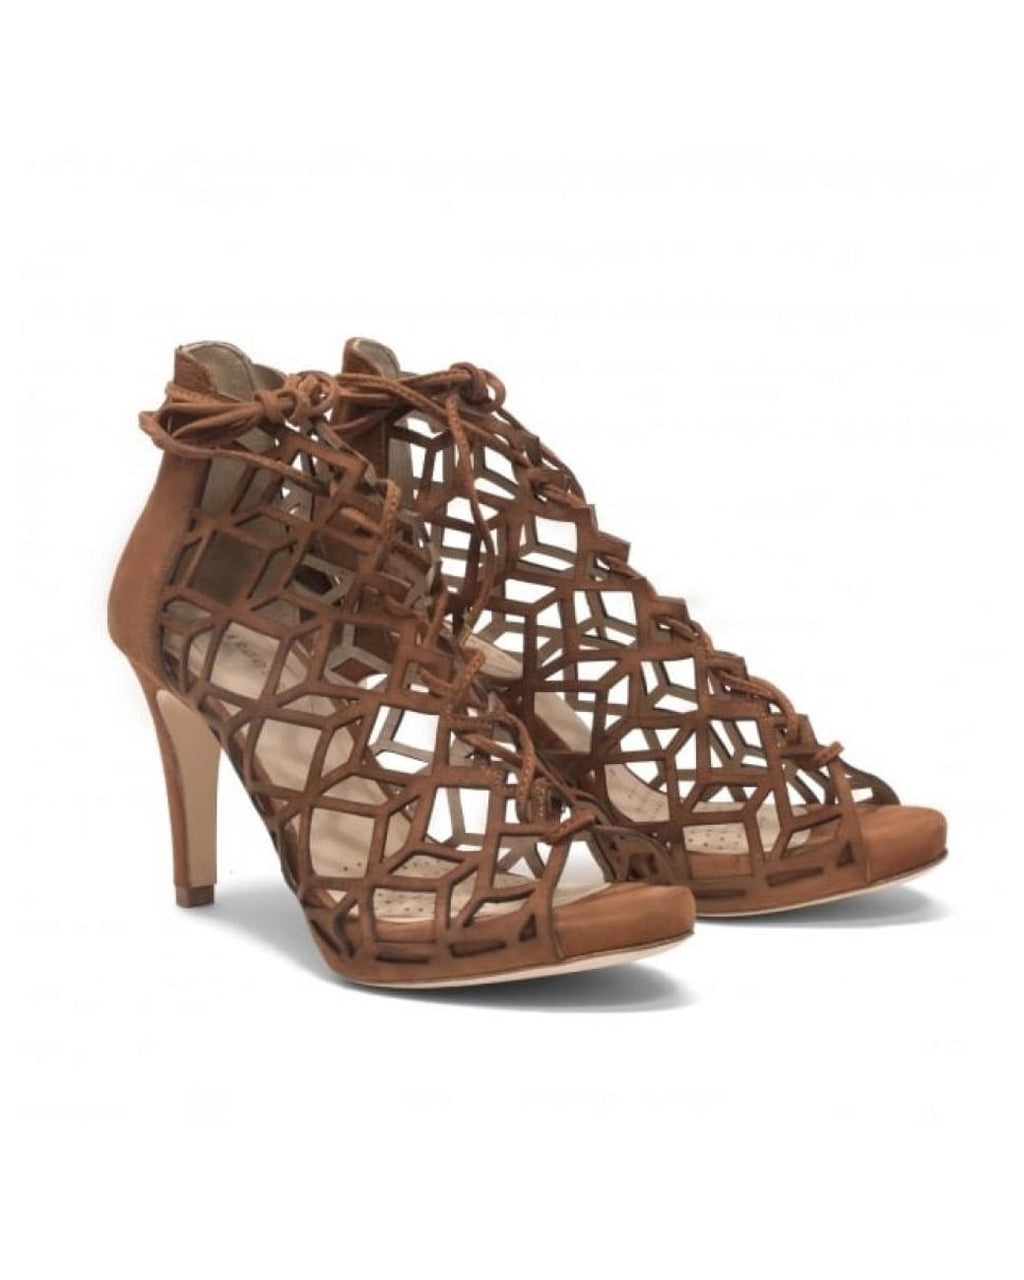 Sargossa Shoes FAIRYTALE Gladiator High Heel Suede Tan Brown